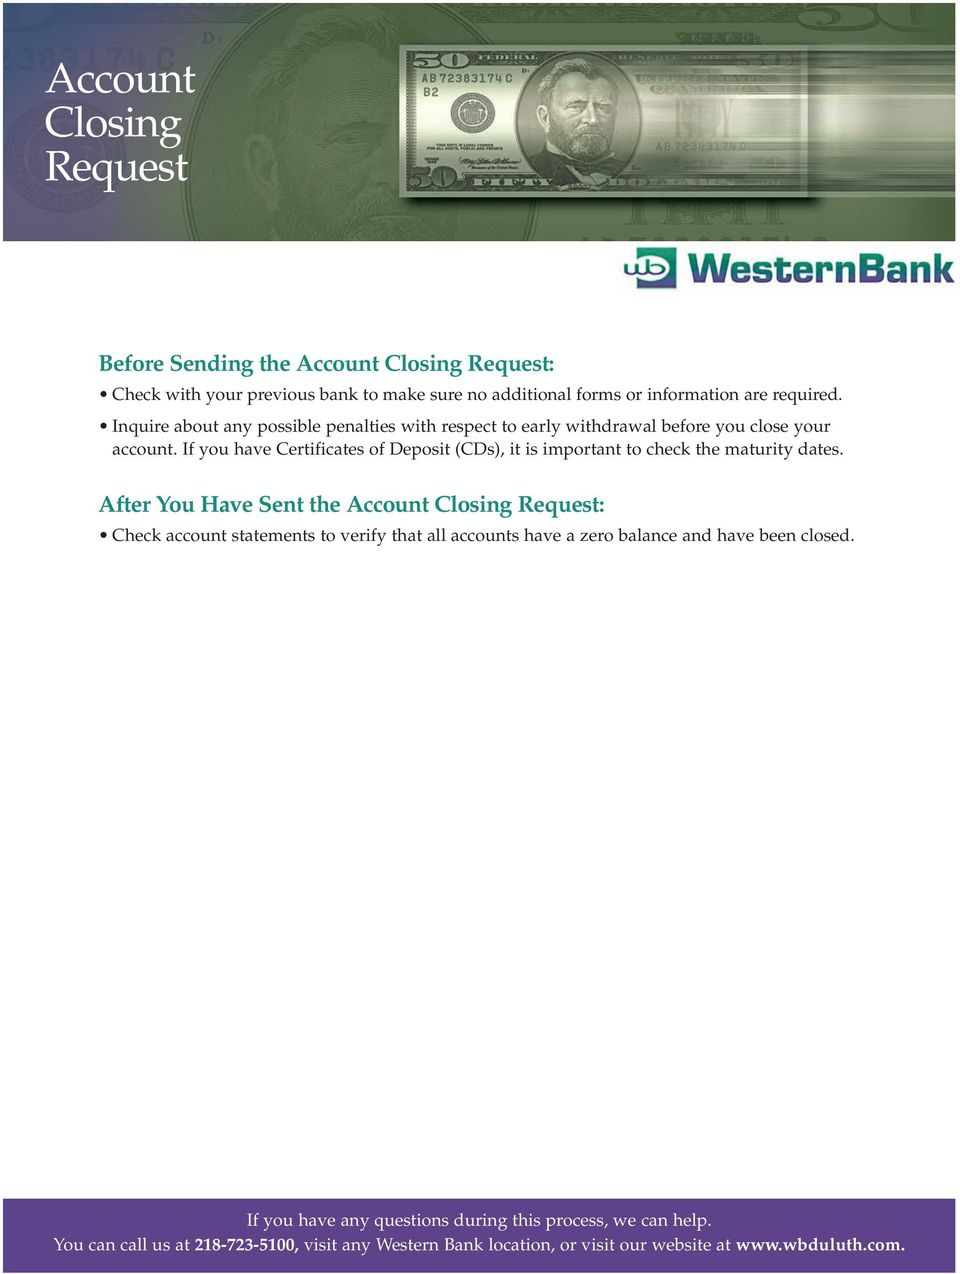 Inquire about any possible penalties with respect to early withdrawal before you close your account.